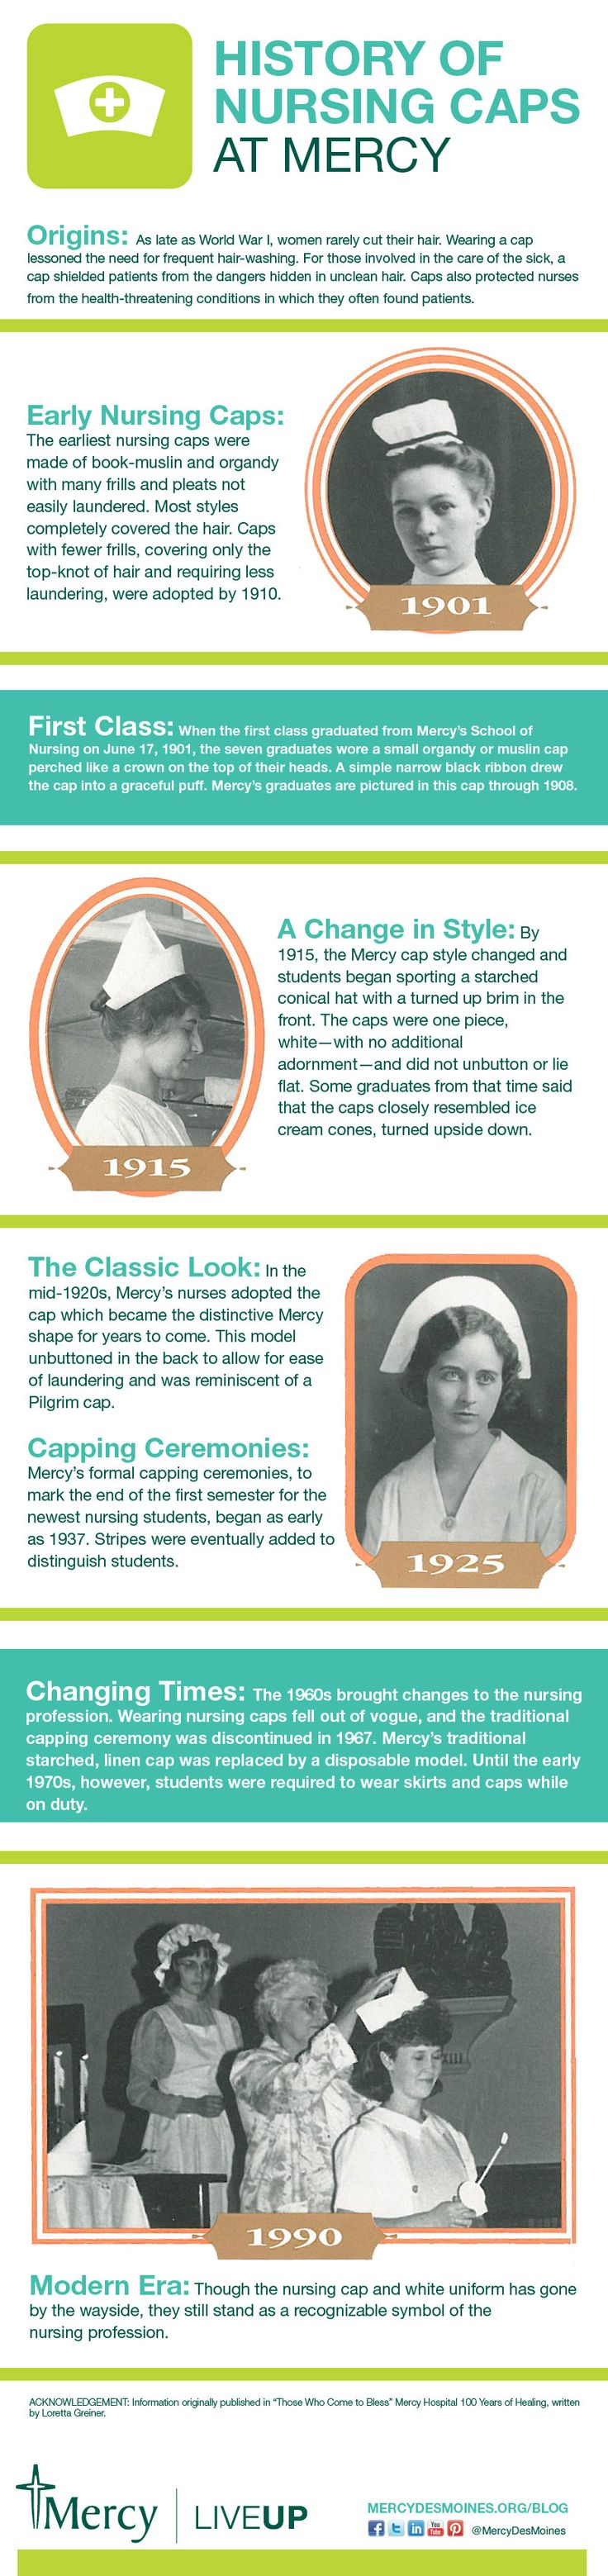 History of #Nursing Caps at Mercy #infographic